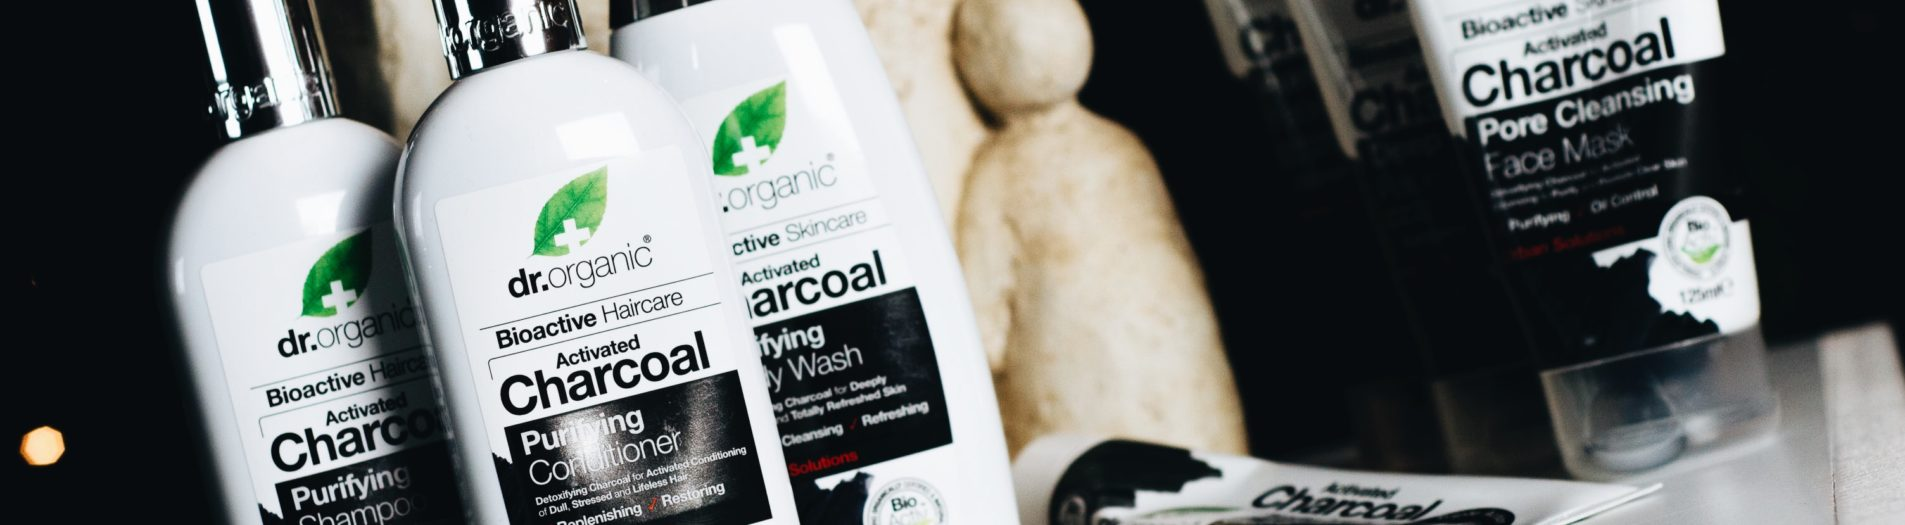 Dr. Organic: activated charcoal